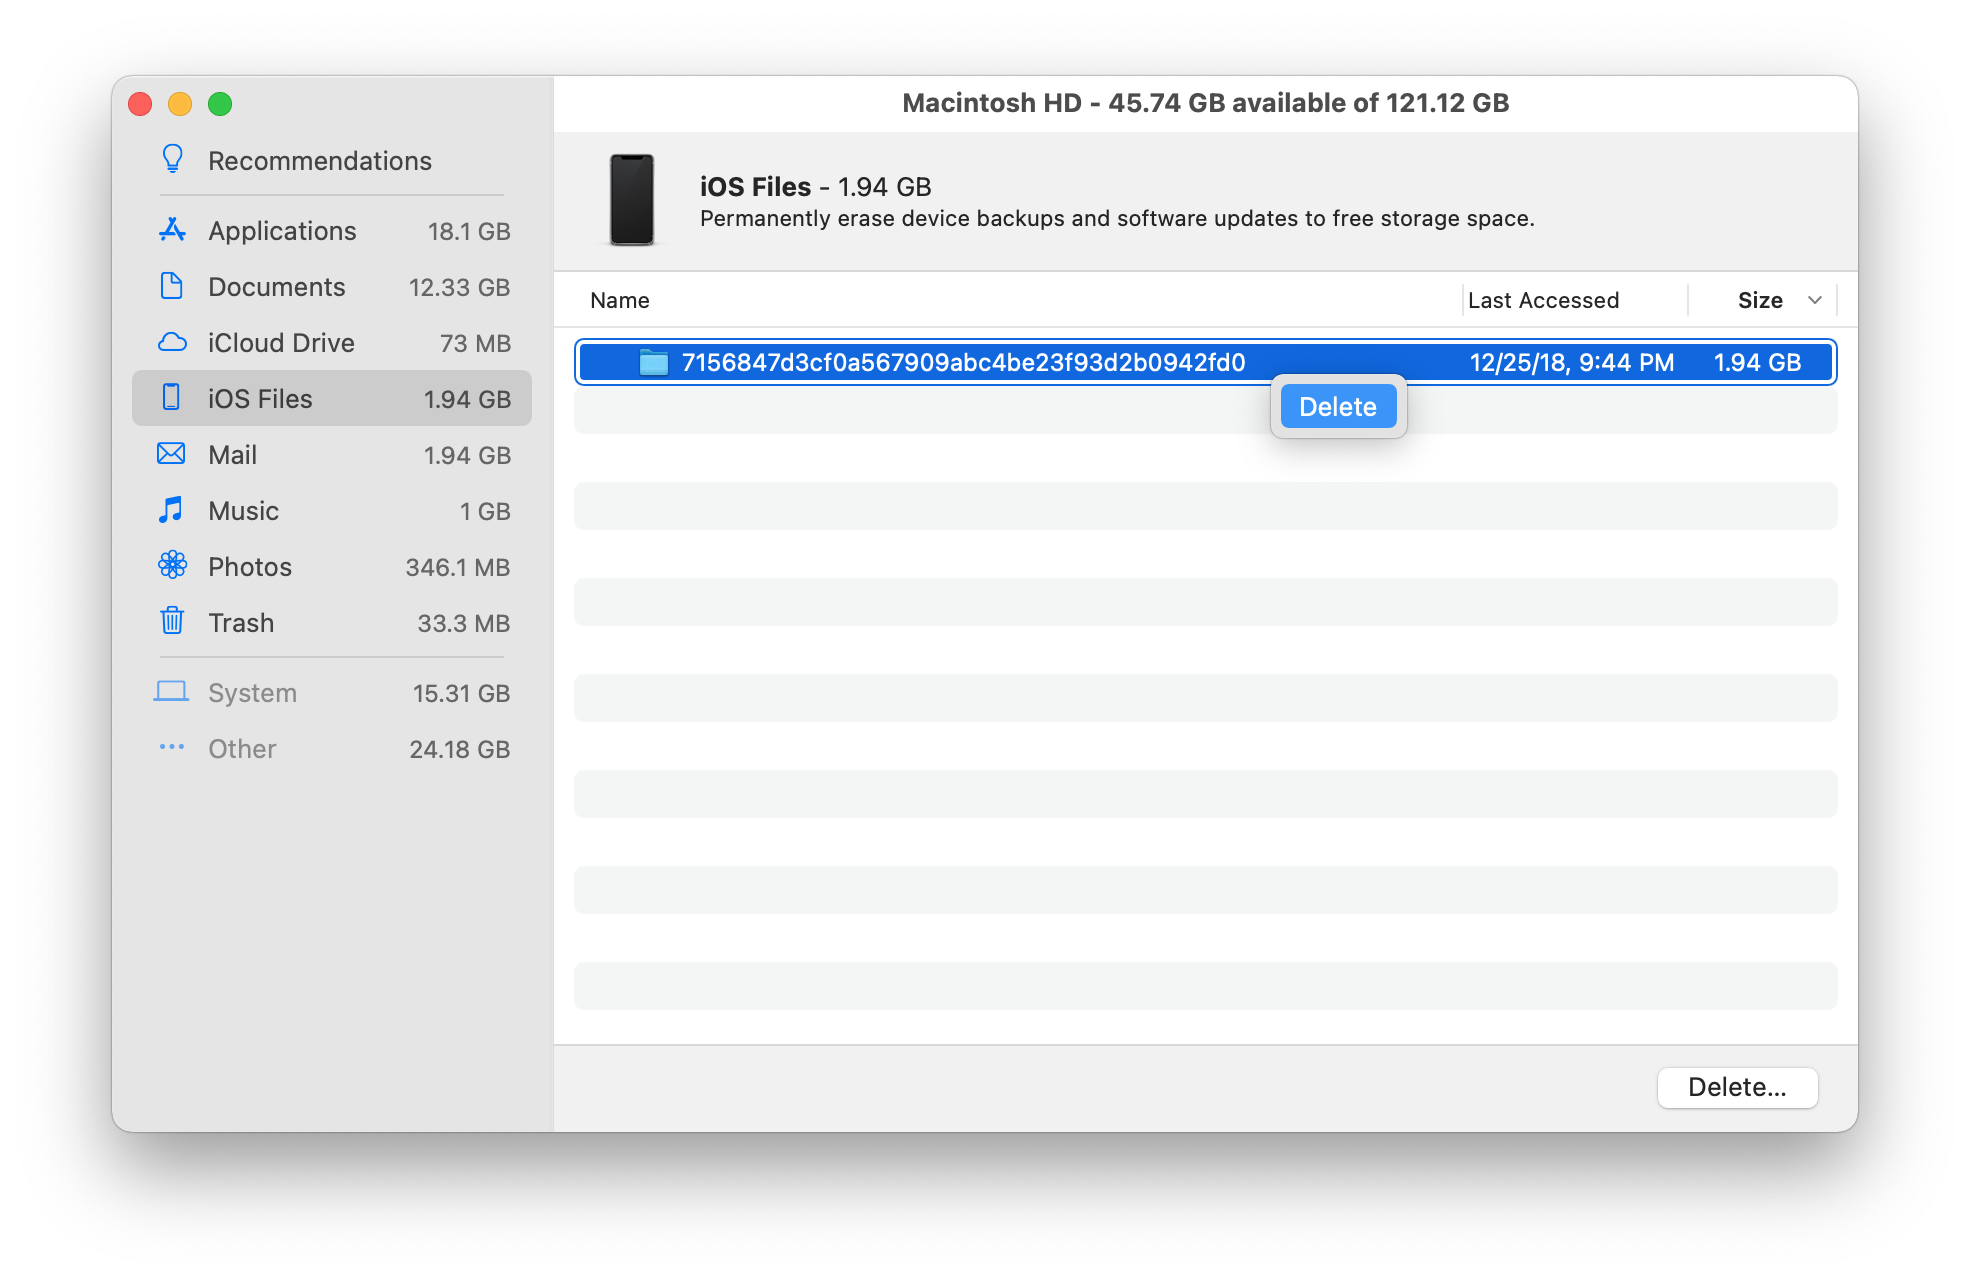 delete iphone backups to clean up Mac storage space